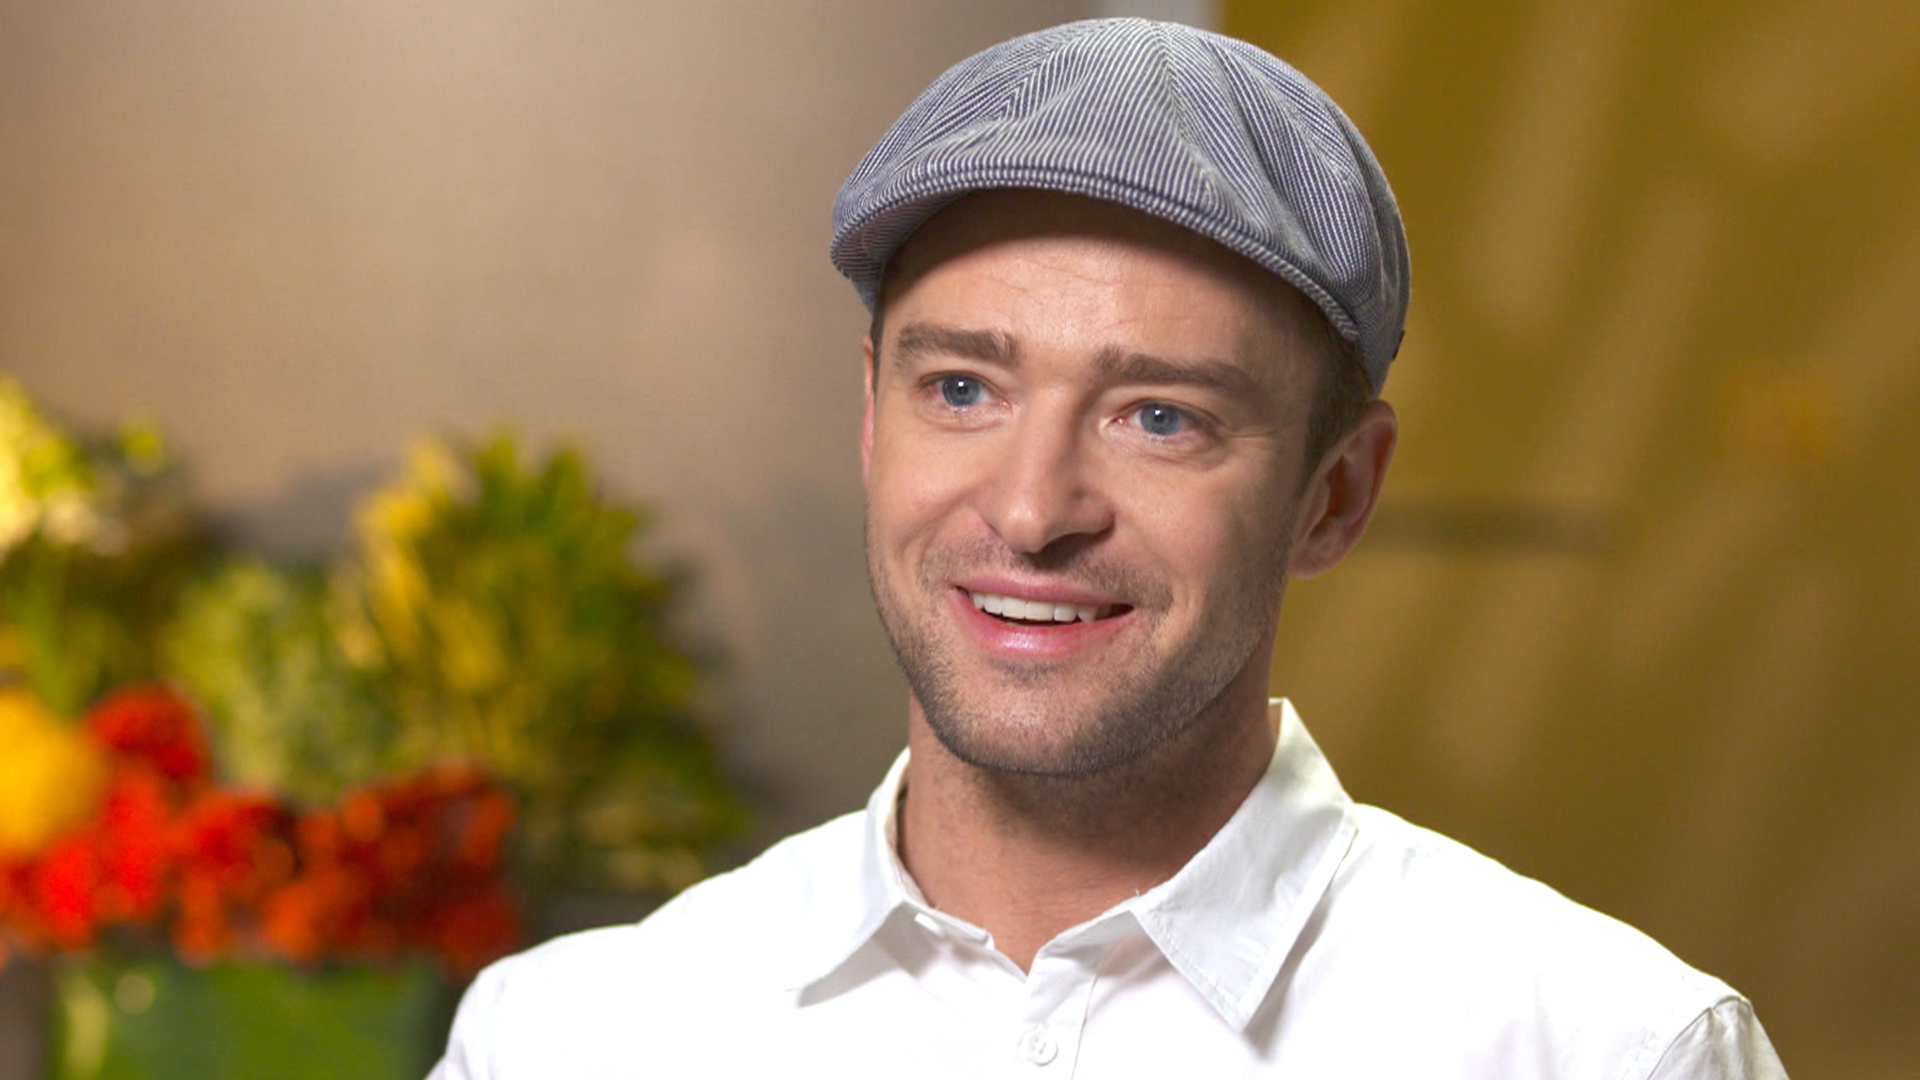 924d44623a7b8 Justin Timberlake talks fatherhood on TODAY   It changes everything